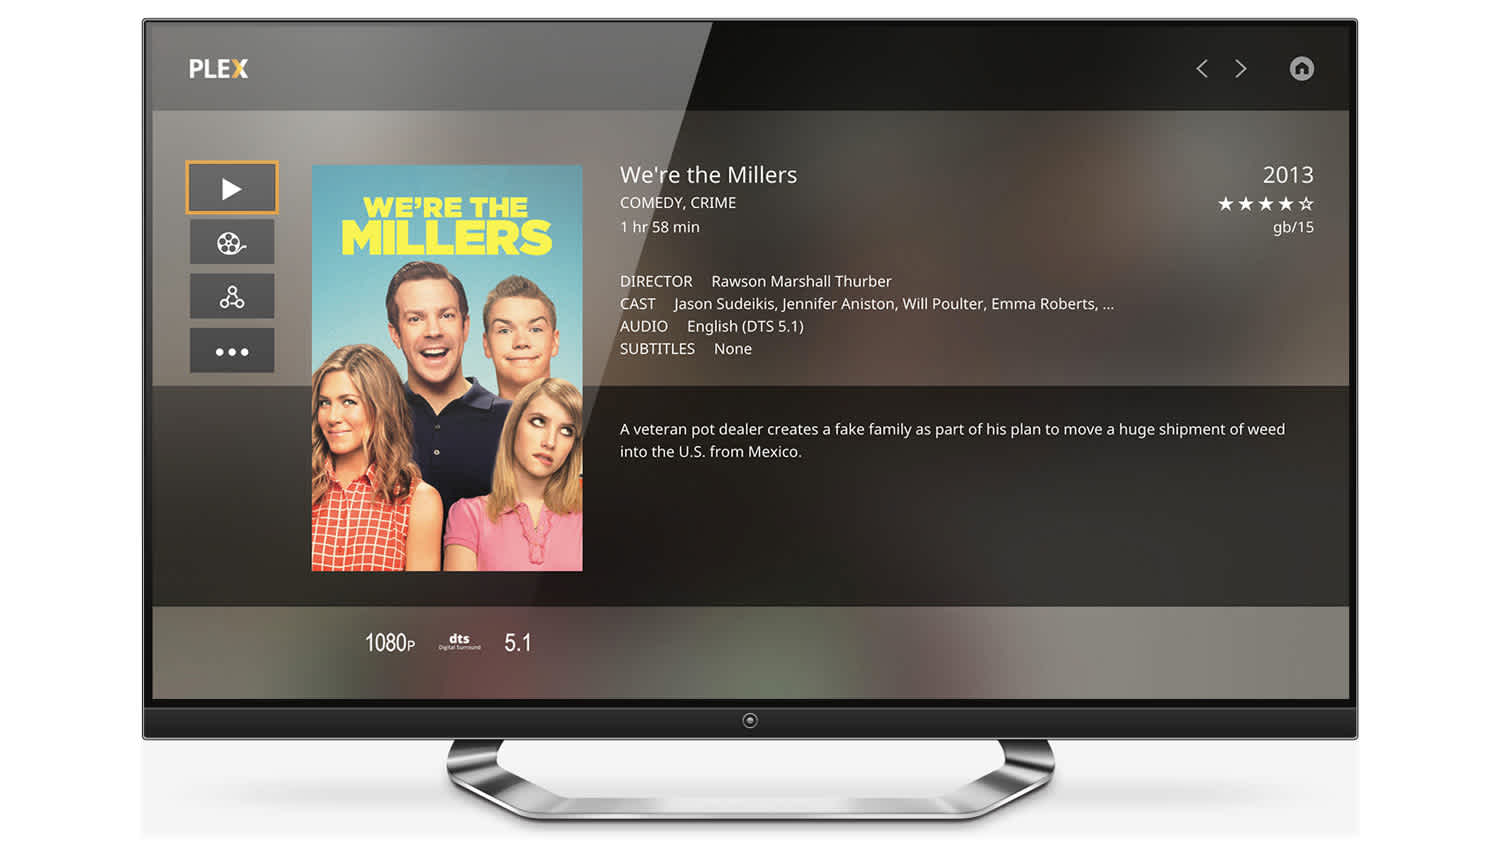 Philips Android TV + Plex video issue